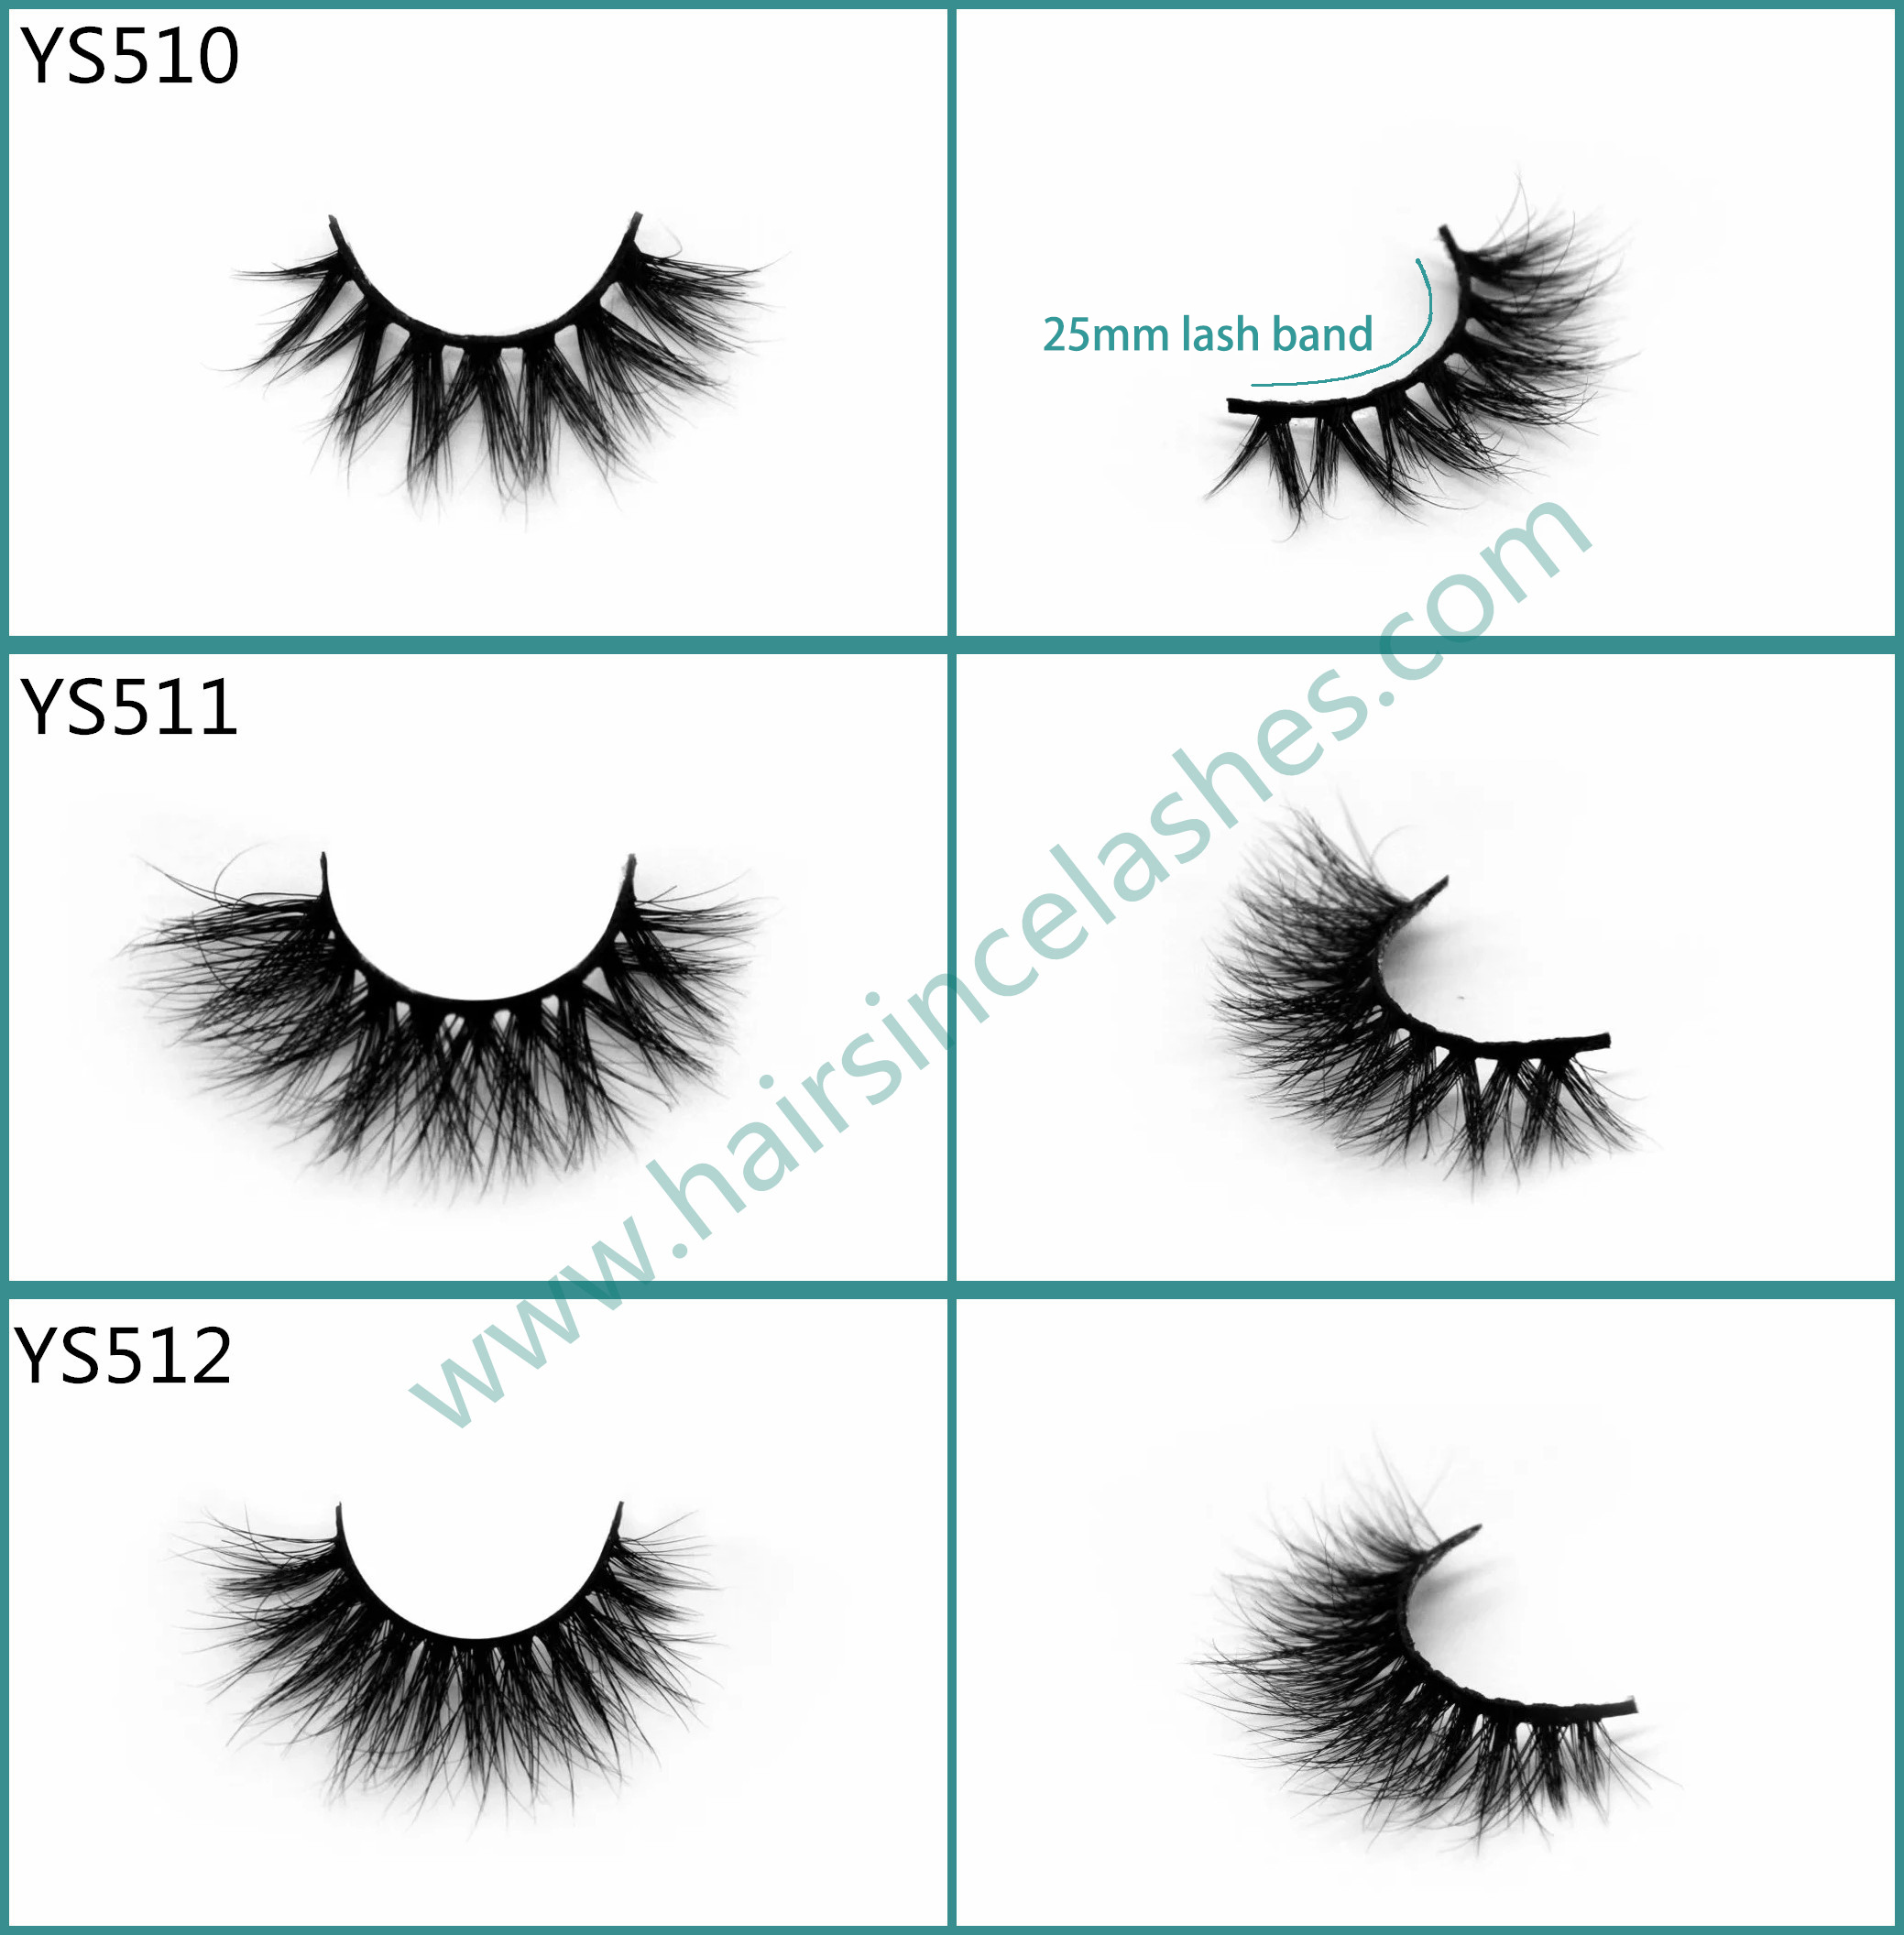 Ebay new popular 3D mink hair lashes natural curls 25mm cotton band for small eyes